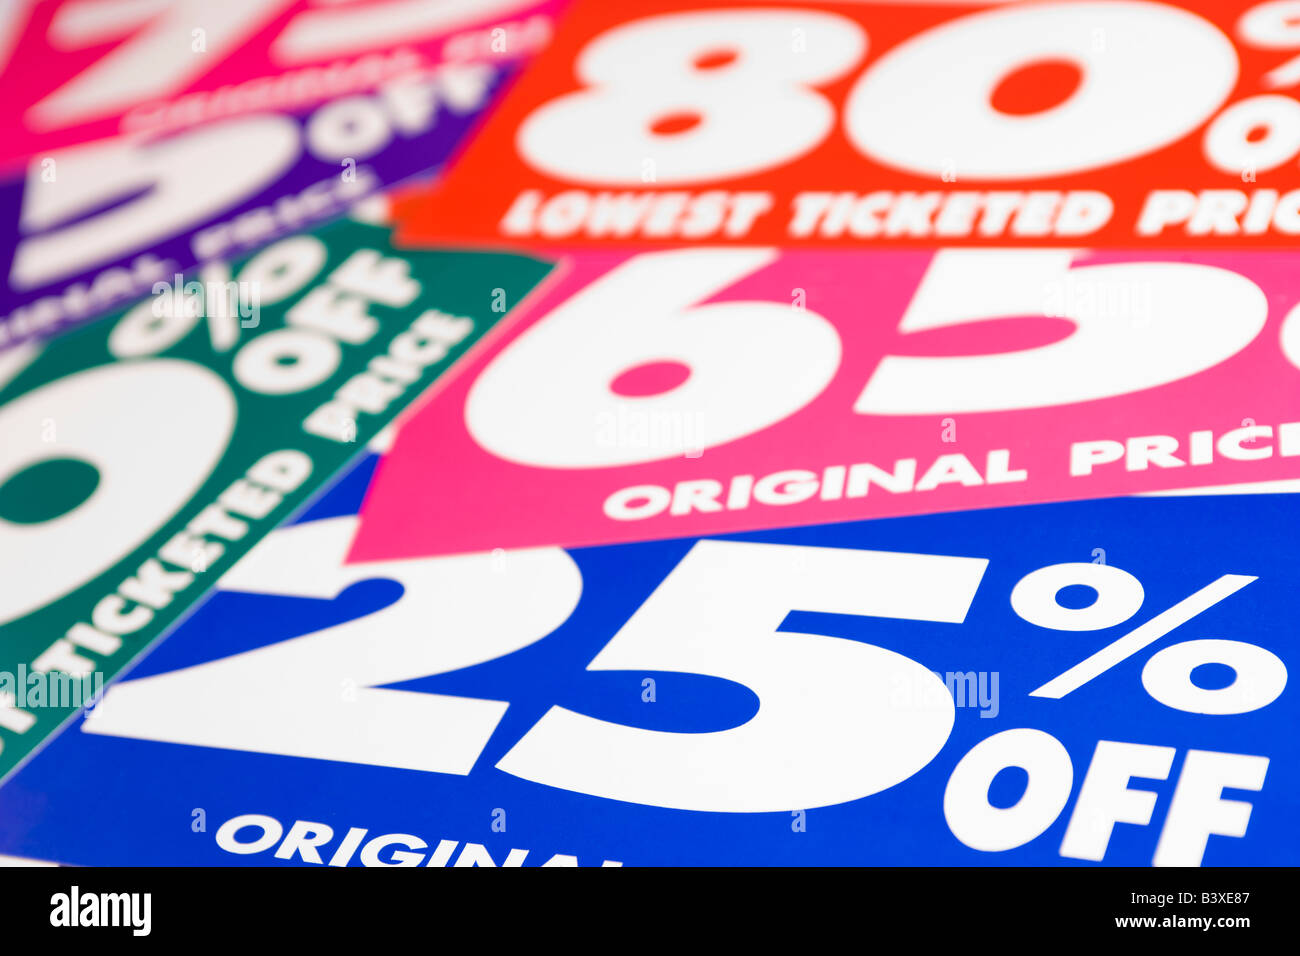 Sales Prices - Stock Image